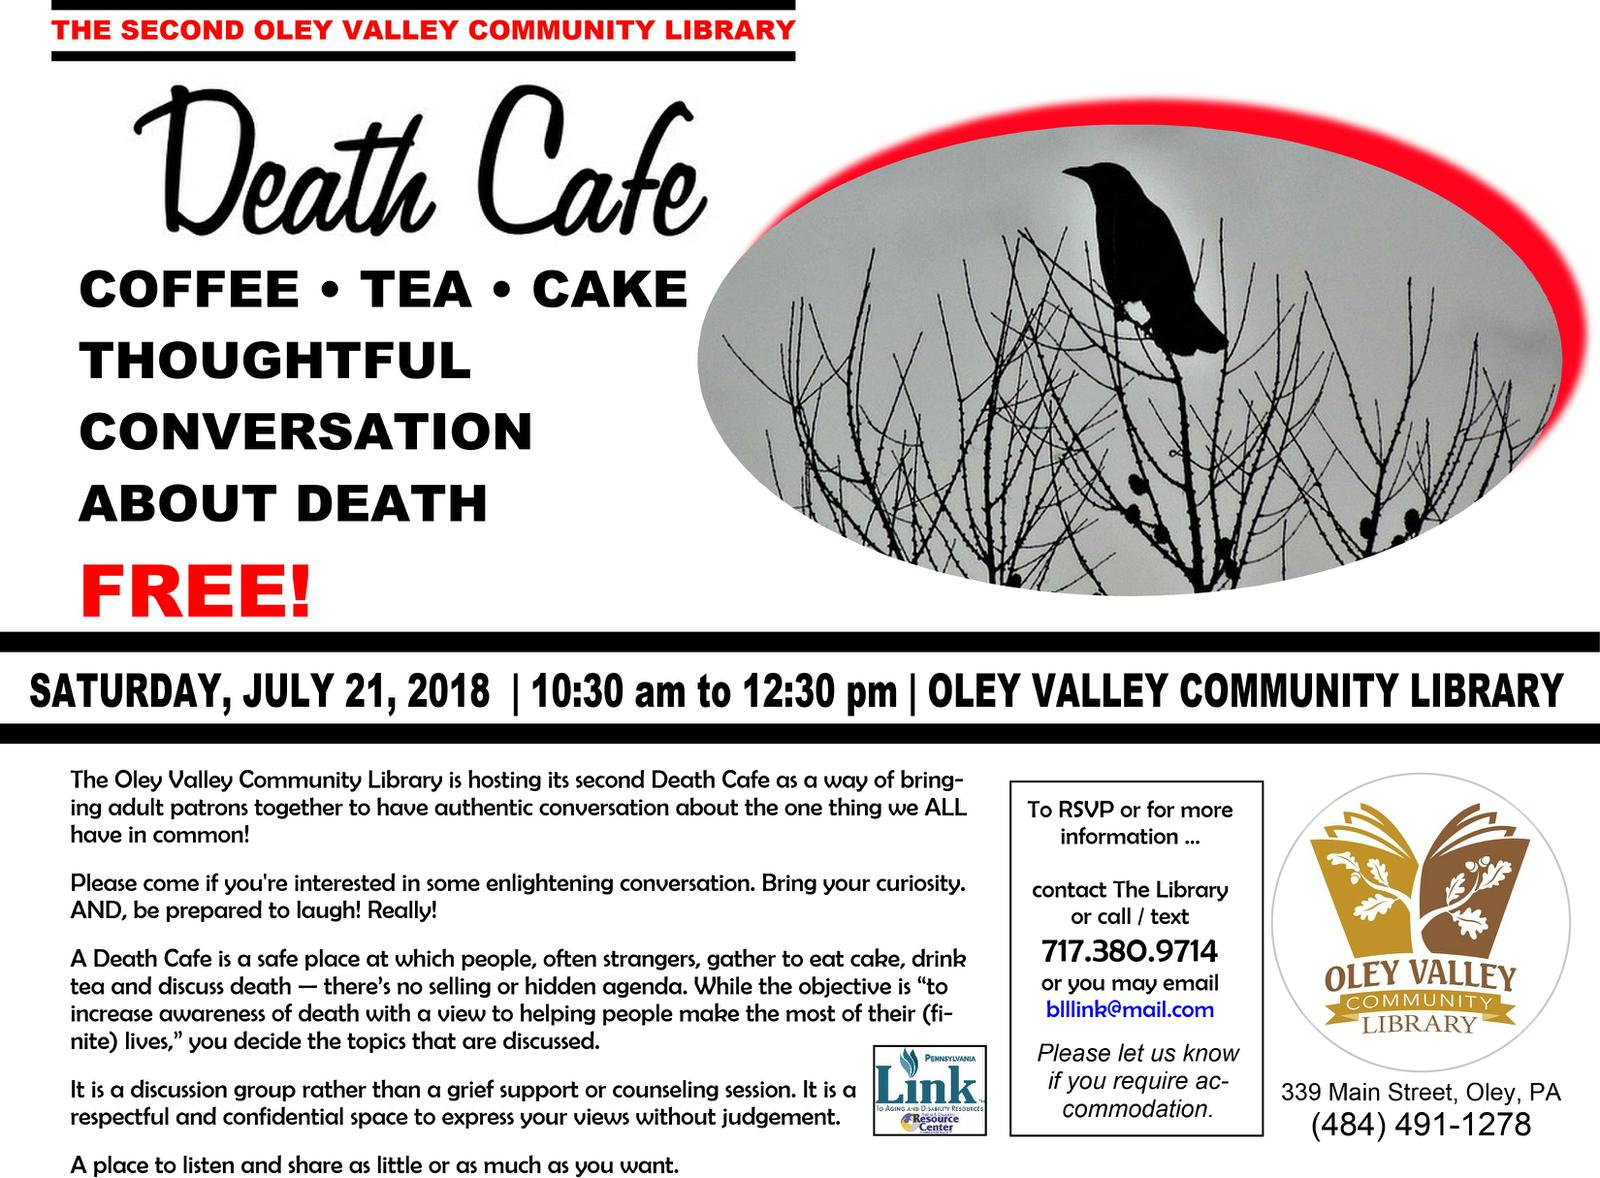 Oley Valley Community Library Death Cafe